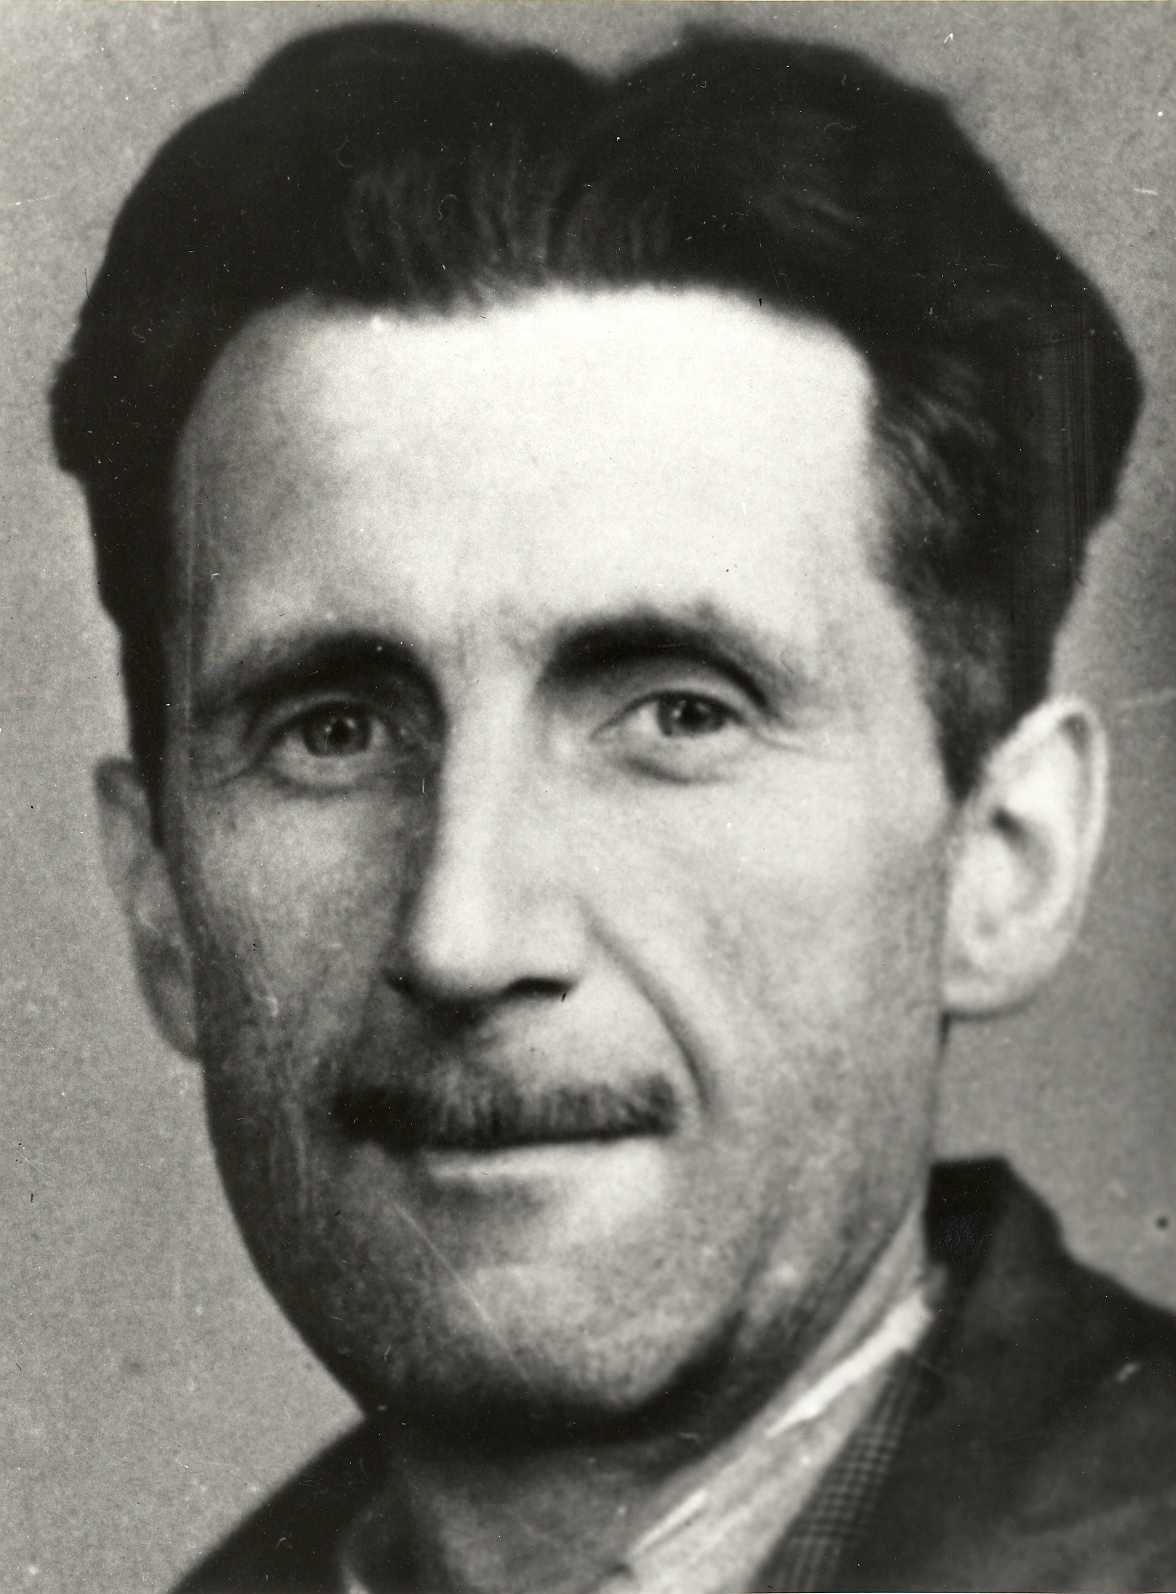 George Orwell - Pressefoto - von Branch of the National Union of Journalists (BNUJ). (http://www.netcharles.com/orwell/) [Public domain], via Wikimedia Commons